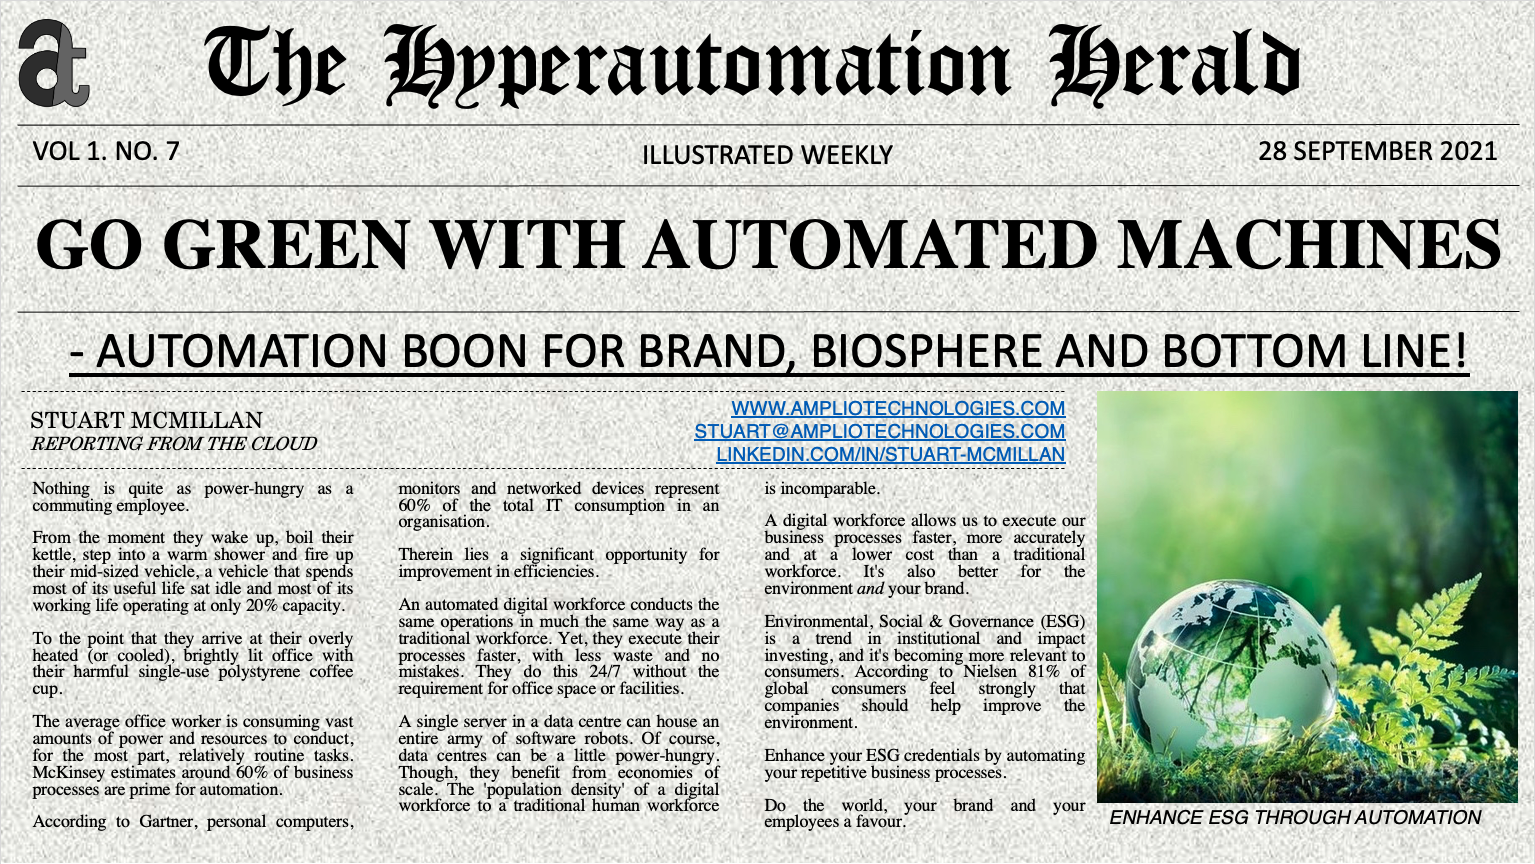 Hyperautomation Herald: Go Green with Automated Machines - Automation Boon for Brand, Biosphere and Bottom Line!